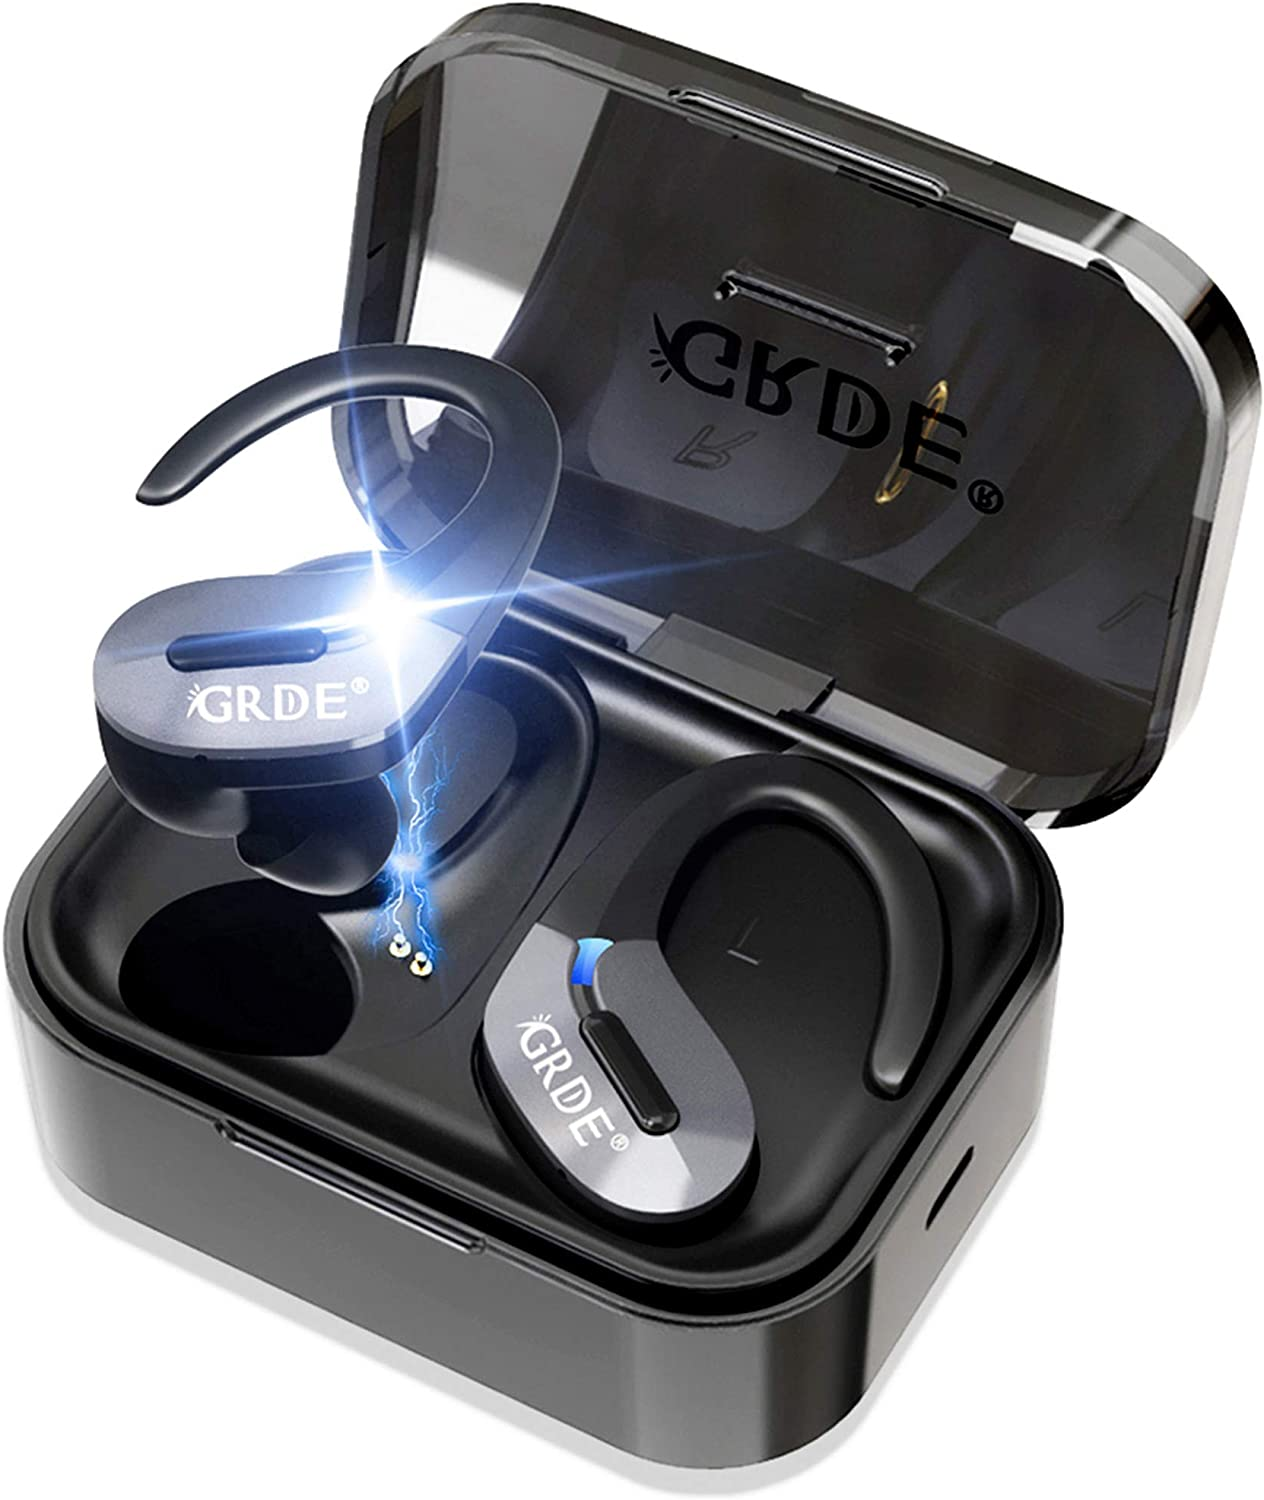 Wireless Earbuds, Bluetooth 5.0 Headphones True Wireless Earbuds Sports in-Ear TWS Stereo HiFi Sound Bluetooth Earbuds 30H Playtime Wireless Earphones with Charging Case 2019 Version